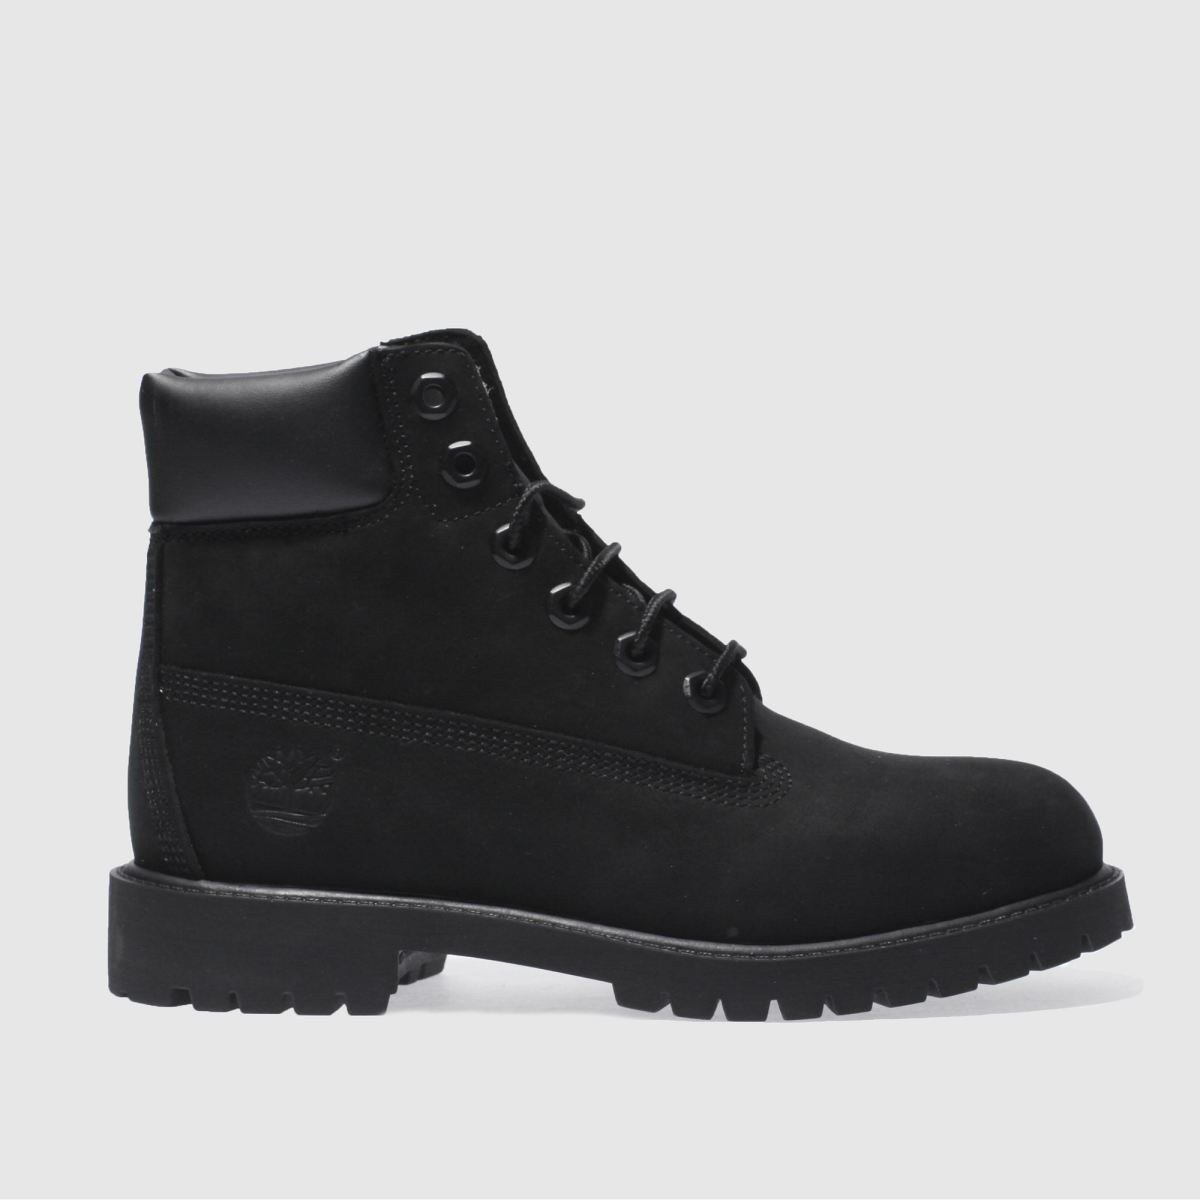 Timberland Black 6 Inch Premium Boots Youth